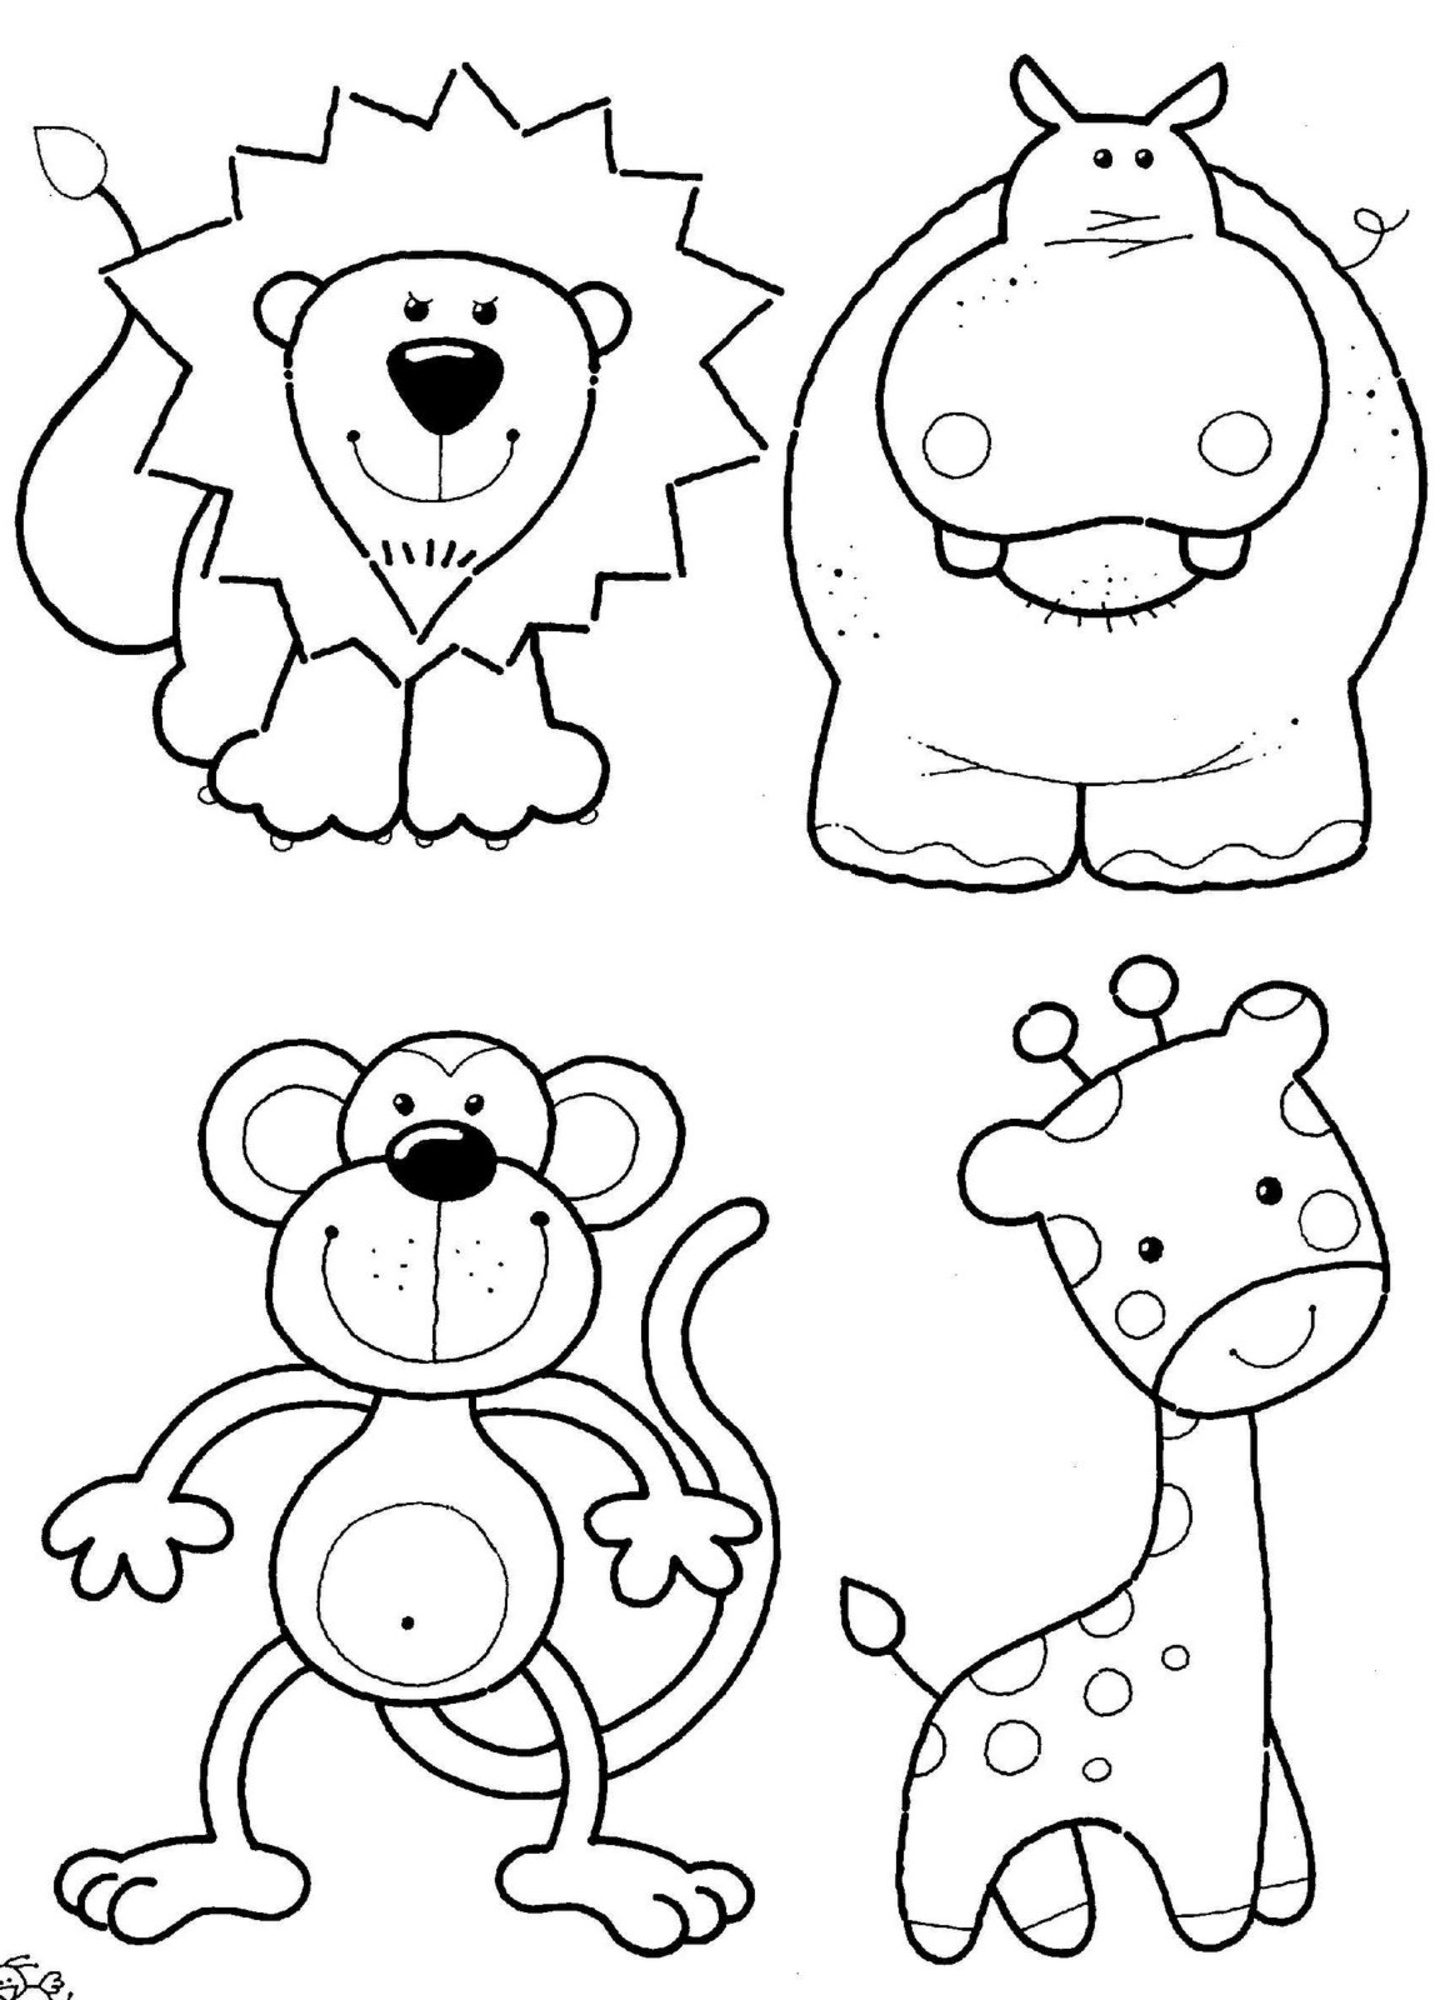 animal pictures coloring pages animal coloring pages for adults best coloring pages for coloring pictures animal pages